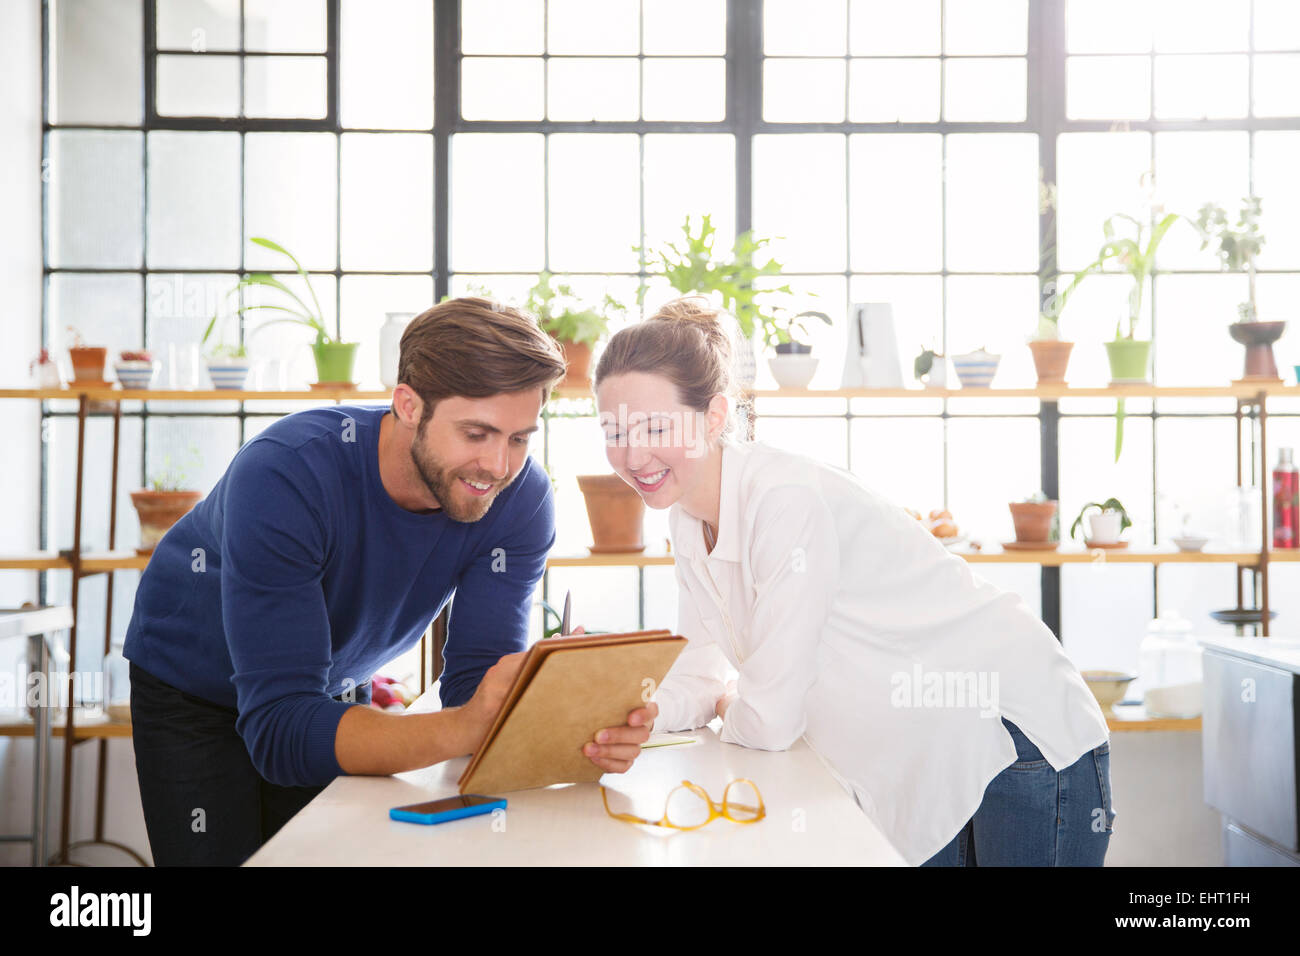 Two young people looking at documents in domestic kitchen - Stock Image